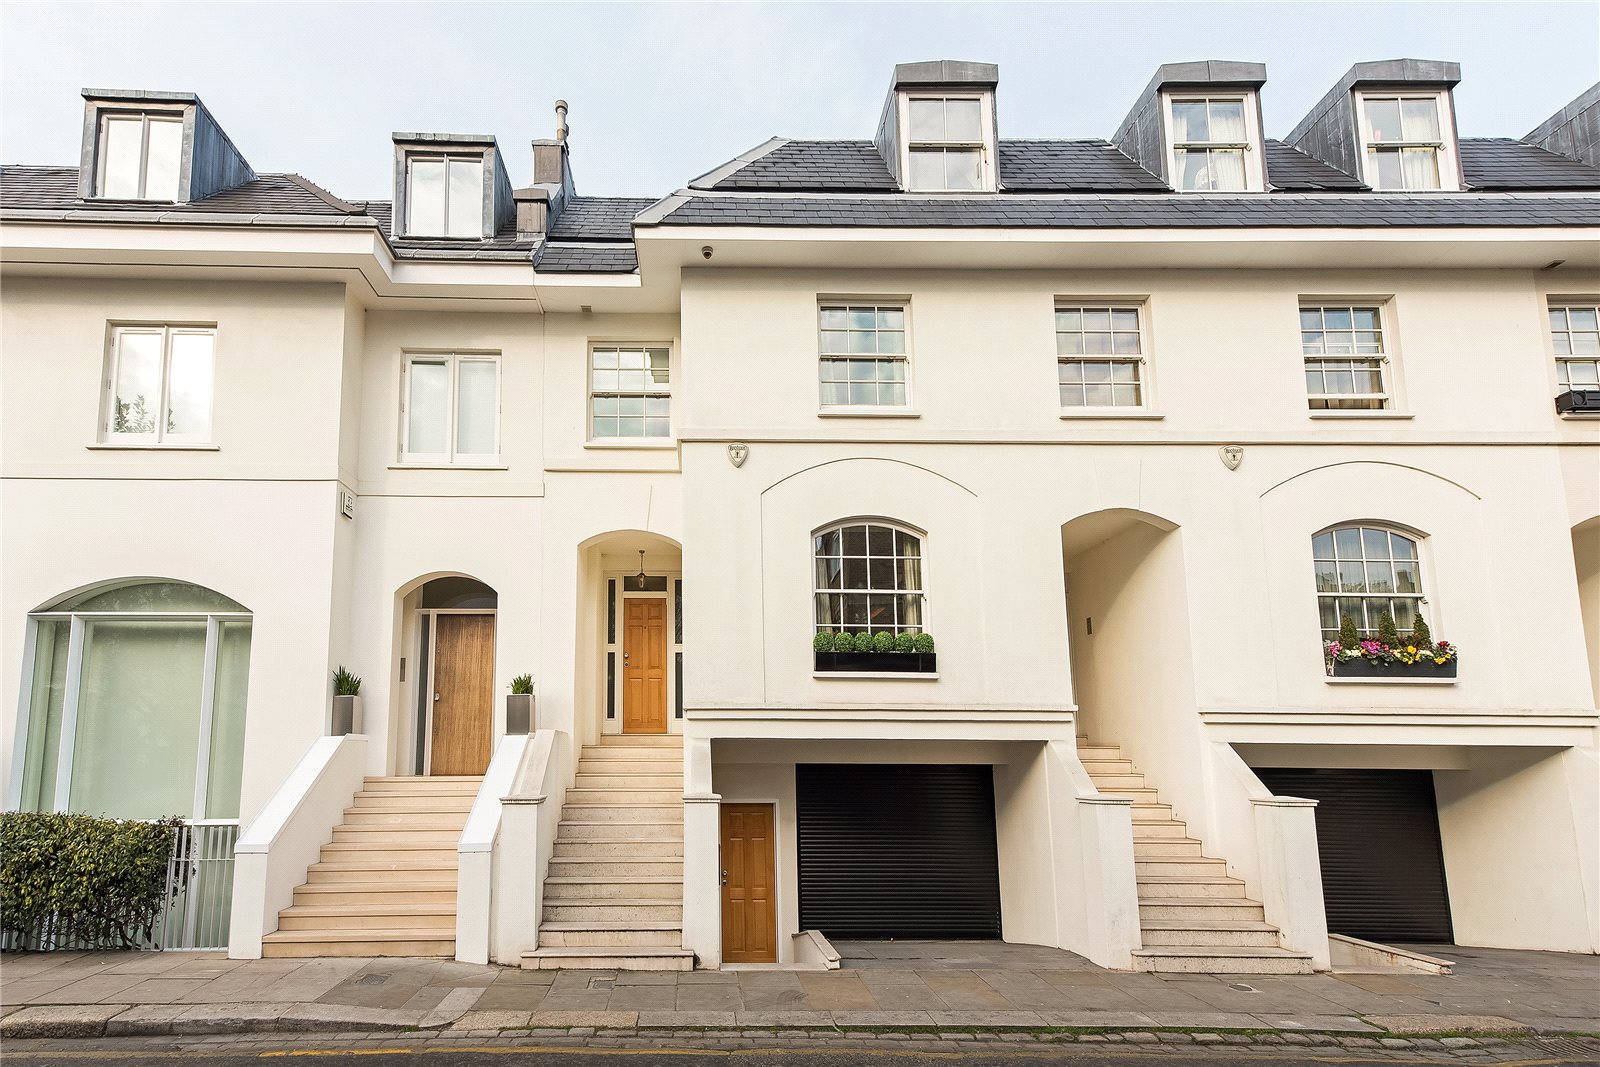 独户住宅 为 销售 在 Clareville Street, South Kensington, London, SW7 South Kensington, London, 英格兰